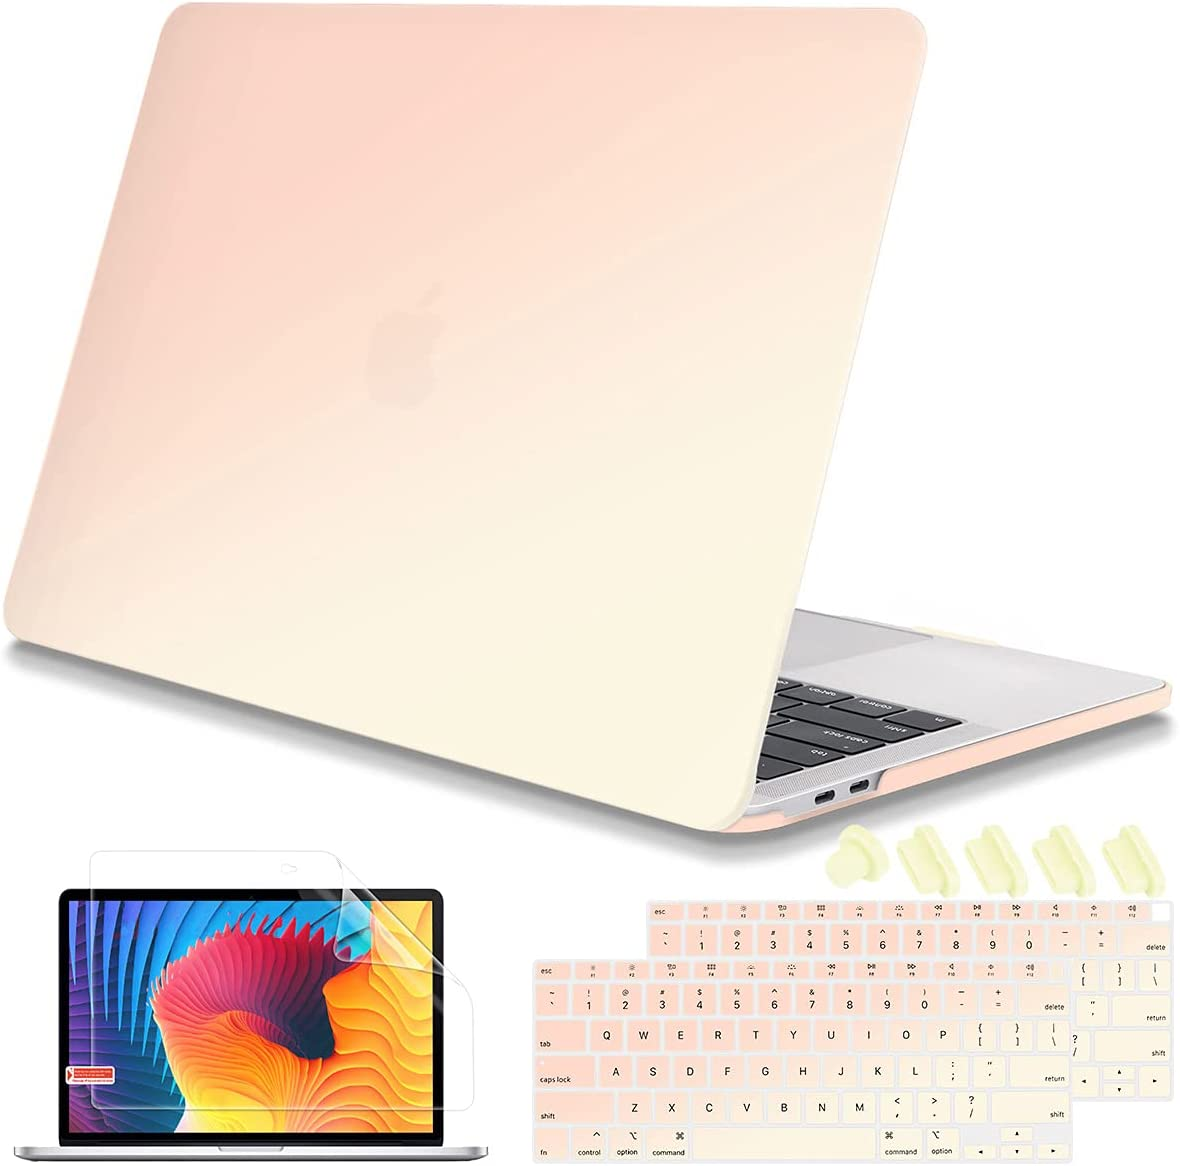 Mektron Smooth Matte Plastic San Diego Mall Hard Shell 13 Air MacBook Shipping included Cover for